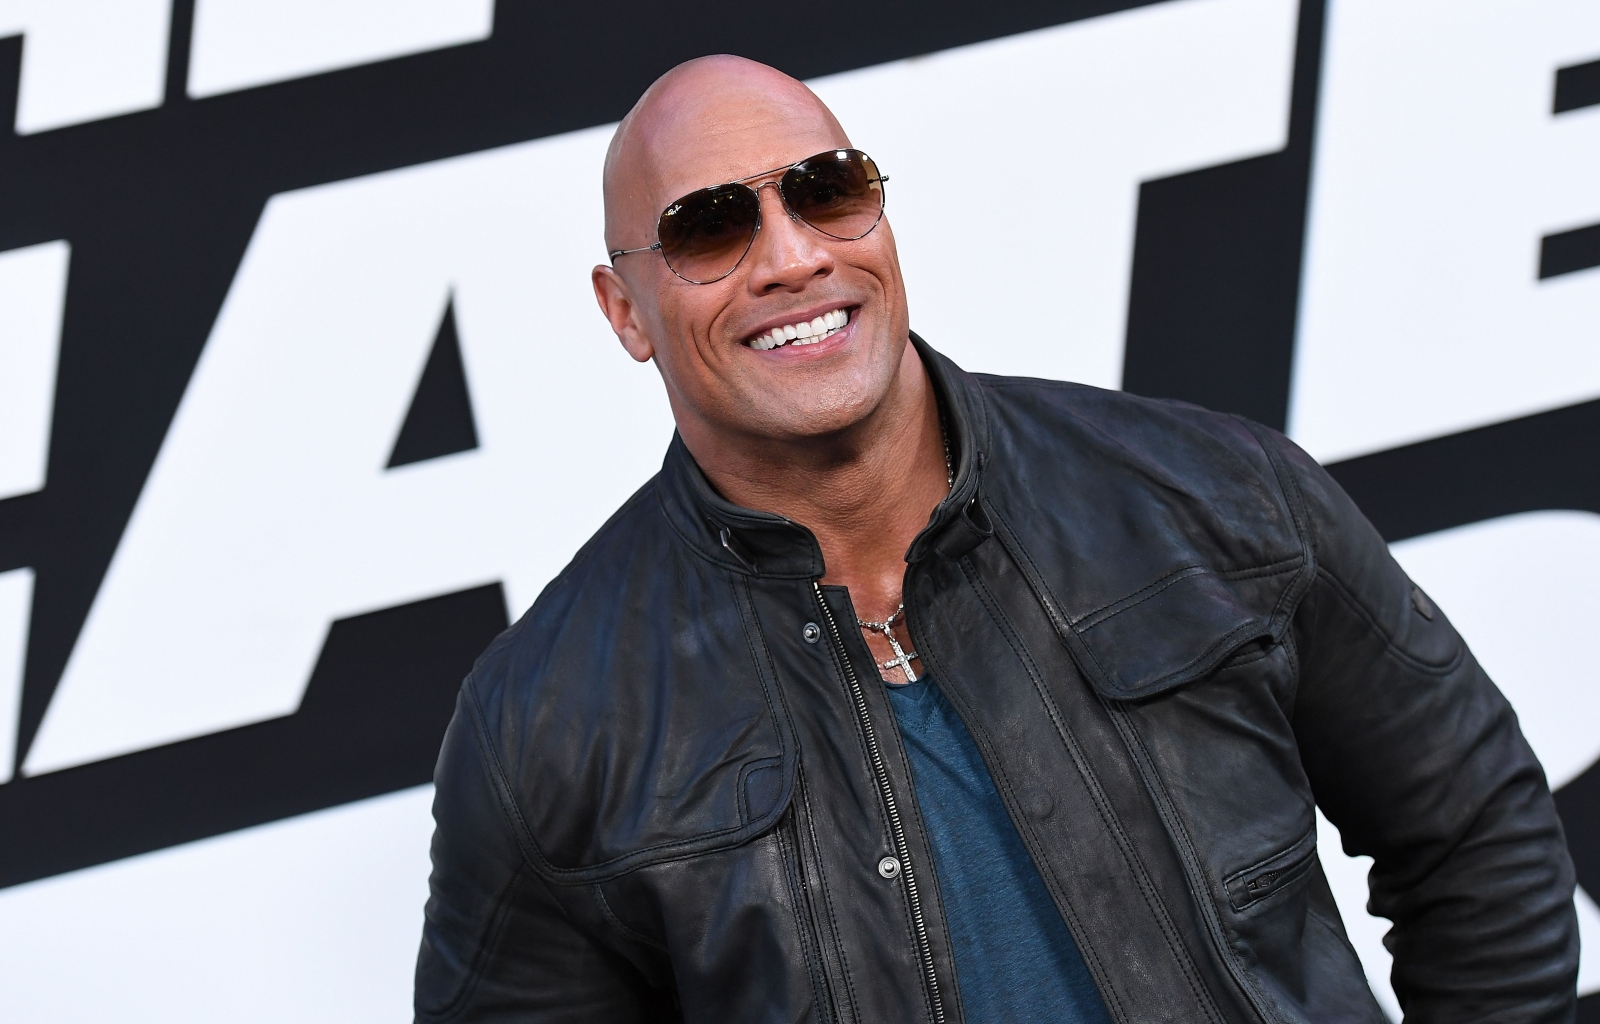 Did Dwayne Johnson just confirm Fast and Furious spin-off? Actor teases epic Jason Statham fight